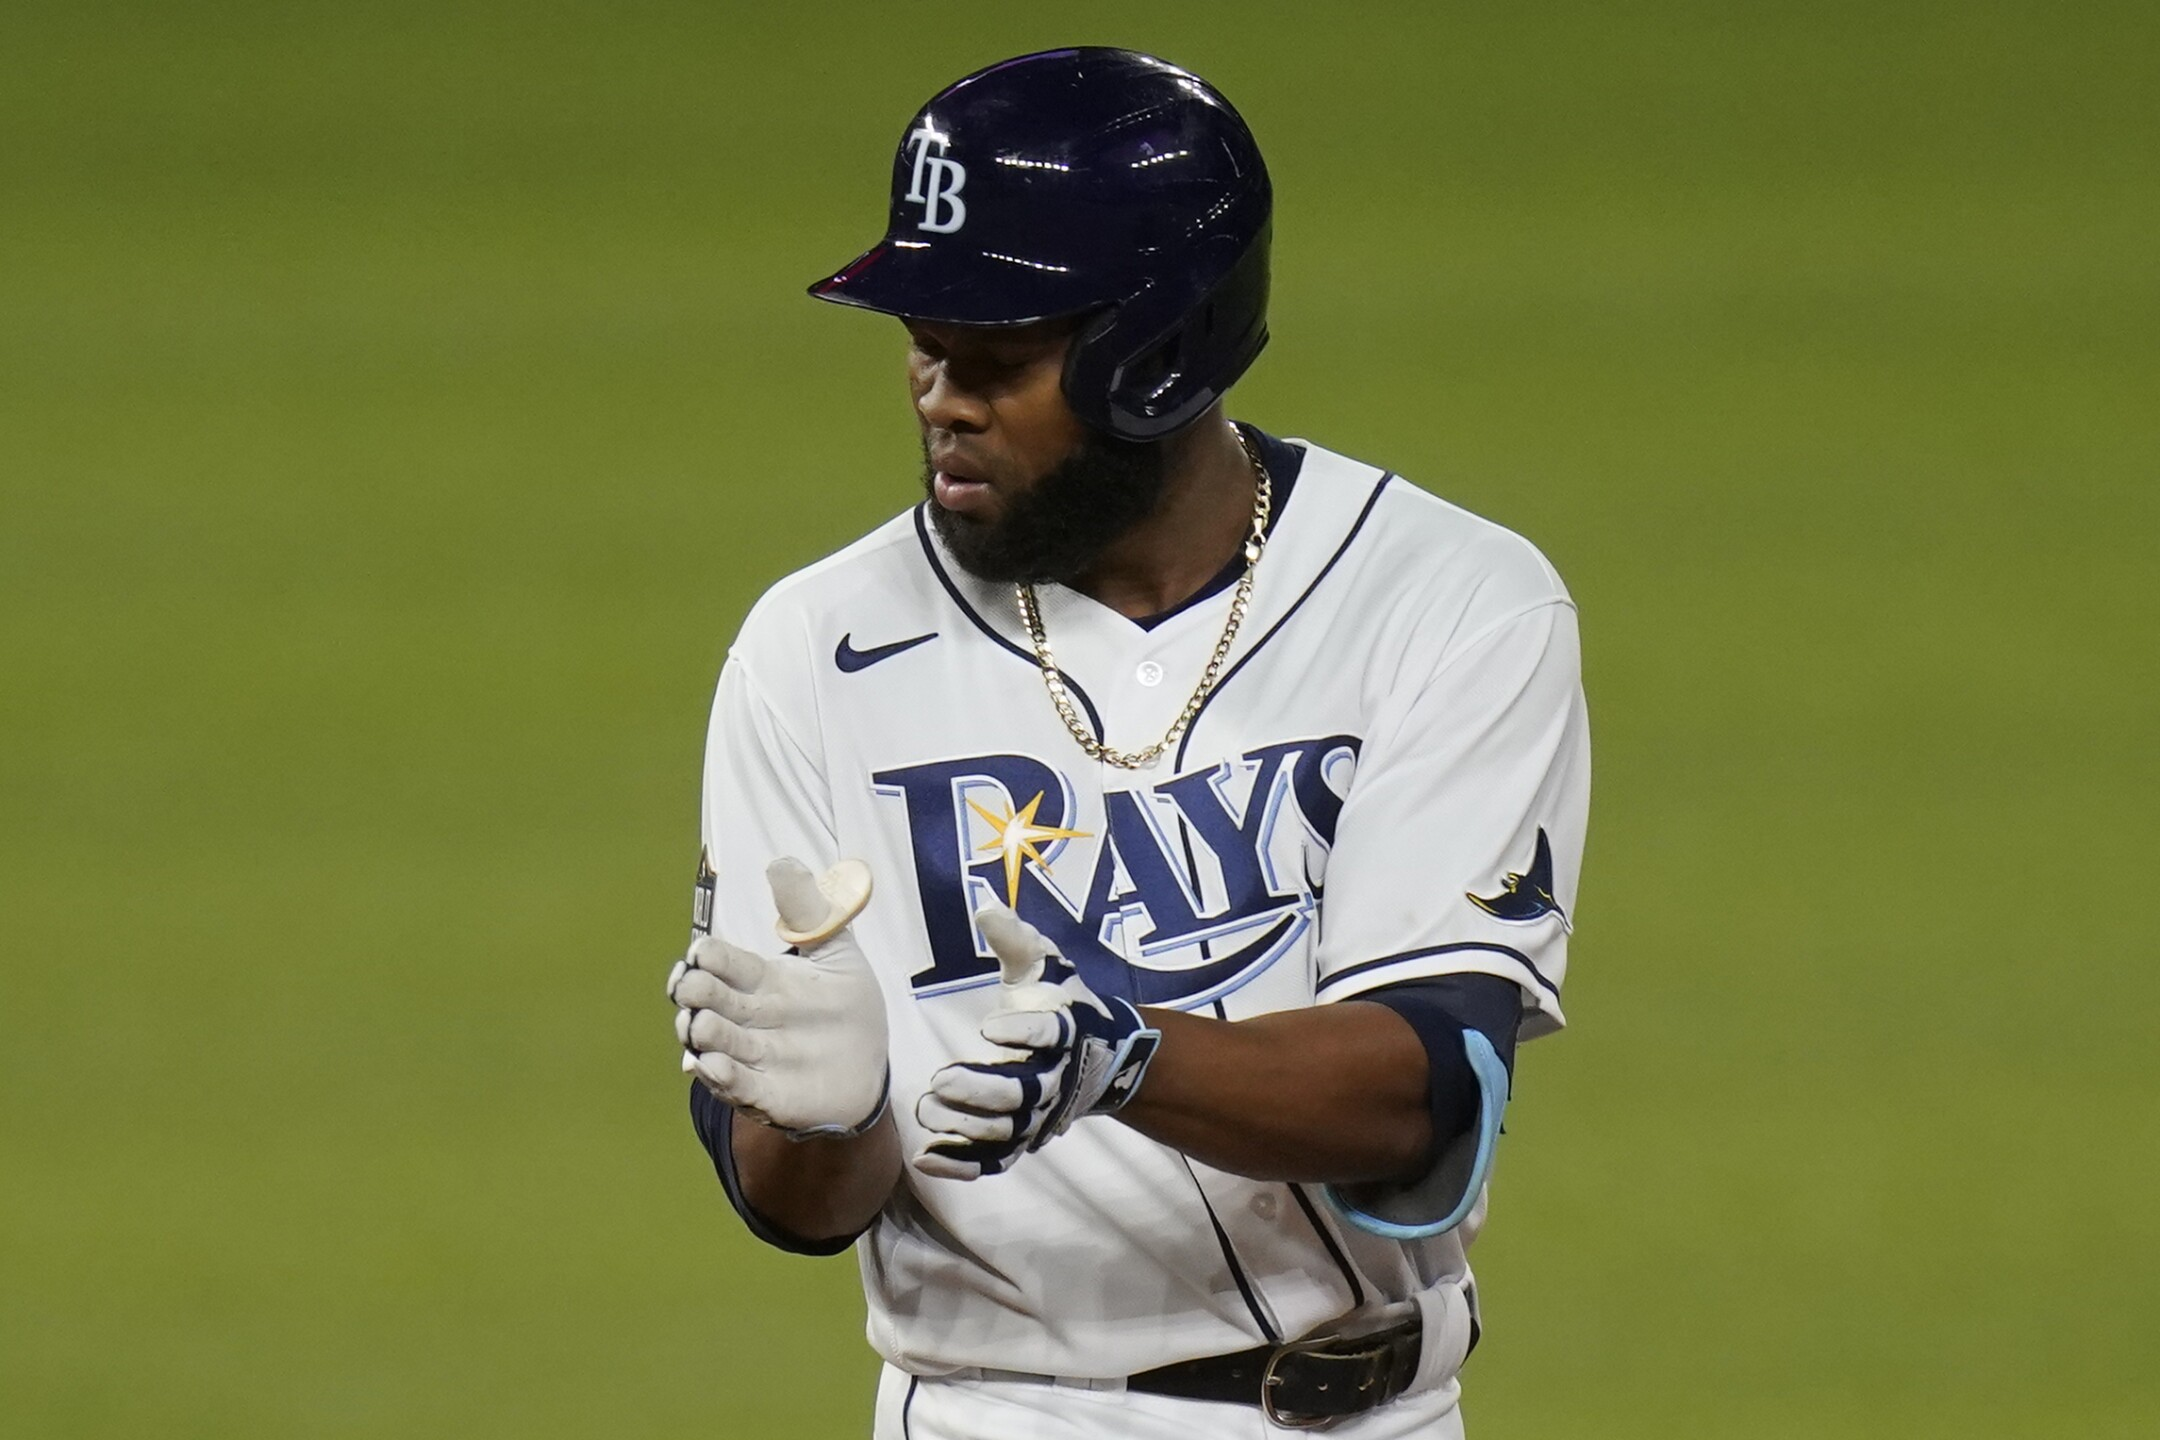 rays-tampa-bay-rays-la-dodgers-ap-image-game3